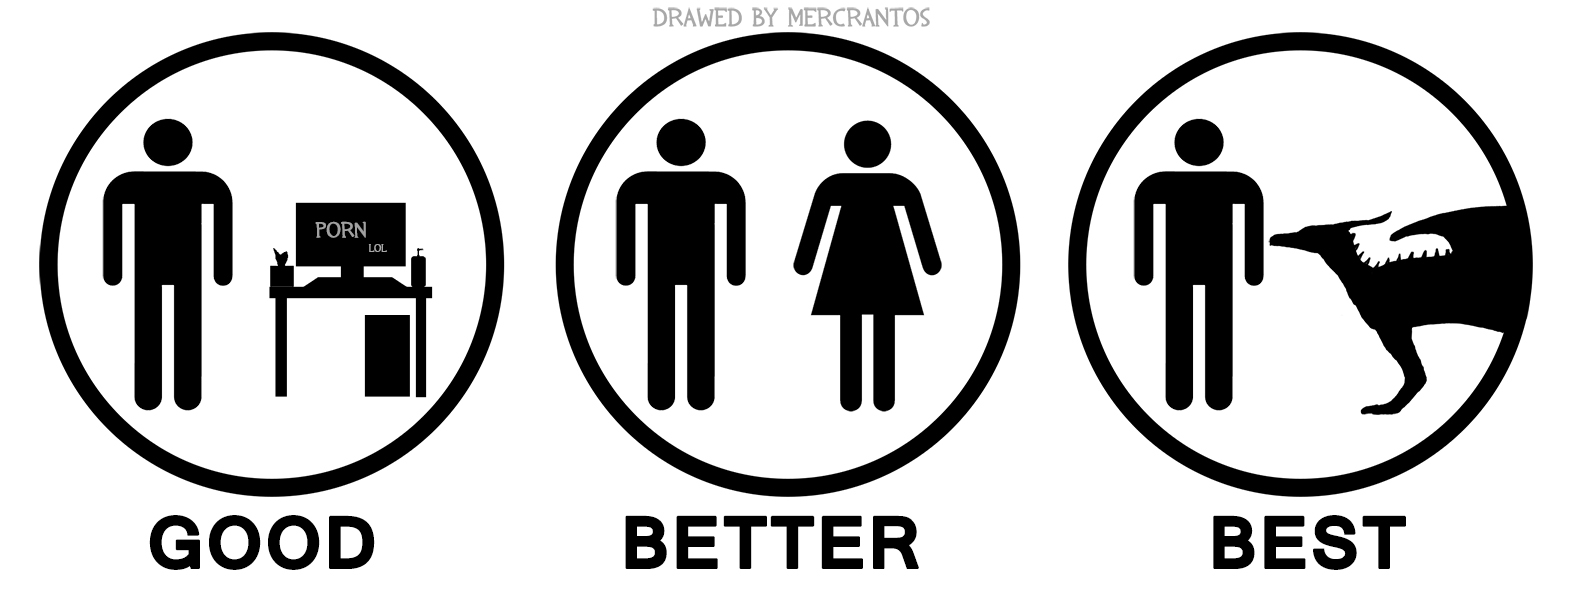 e621 ambiguous_gender black_and_white circle computer desk dragon english_text female group hi_res human human_focus humor lol_comments male mammal mercrantos monochrome scalie silhouette simple_background standing stick_figure text the_truth white_background